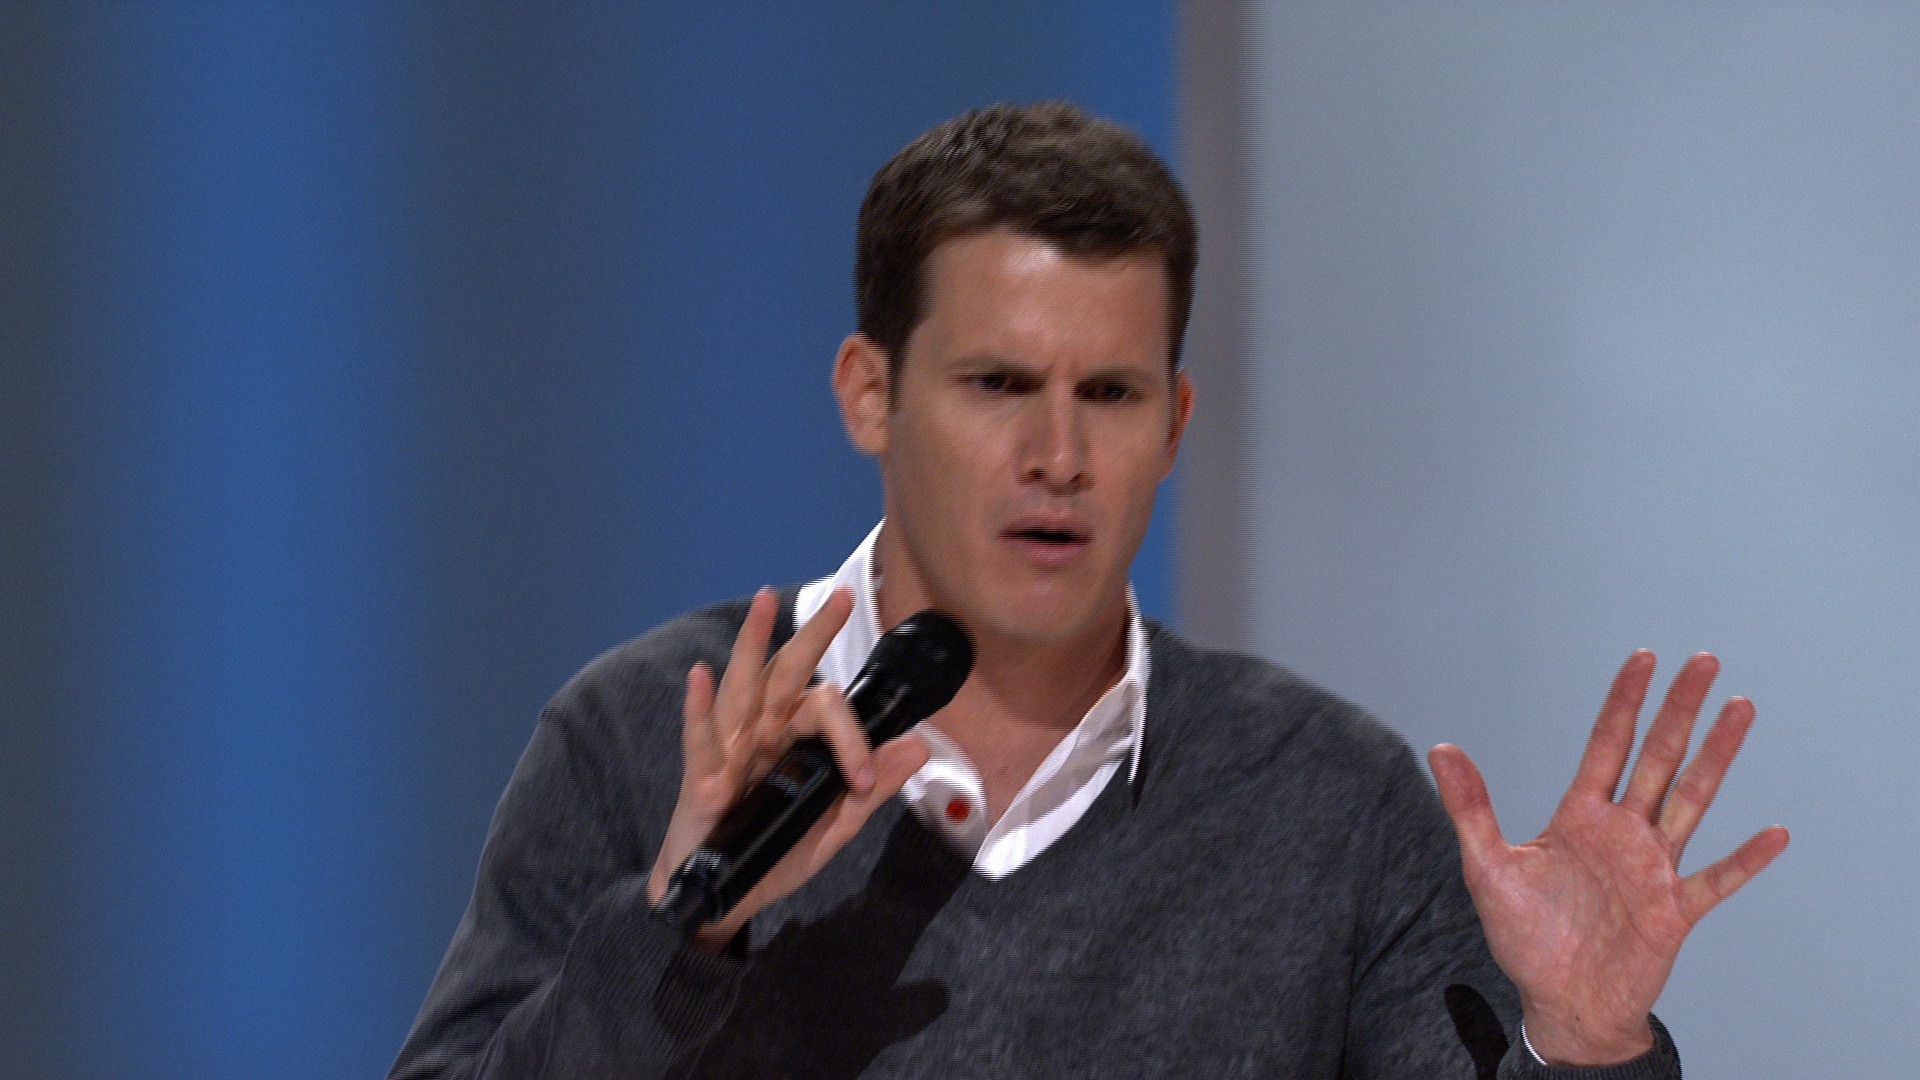 Daniel Tosh - To the Mormons